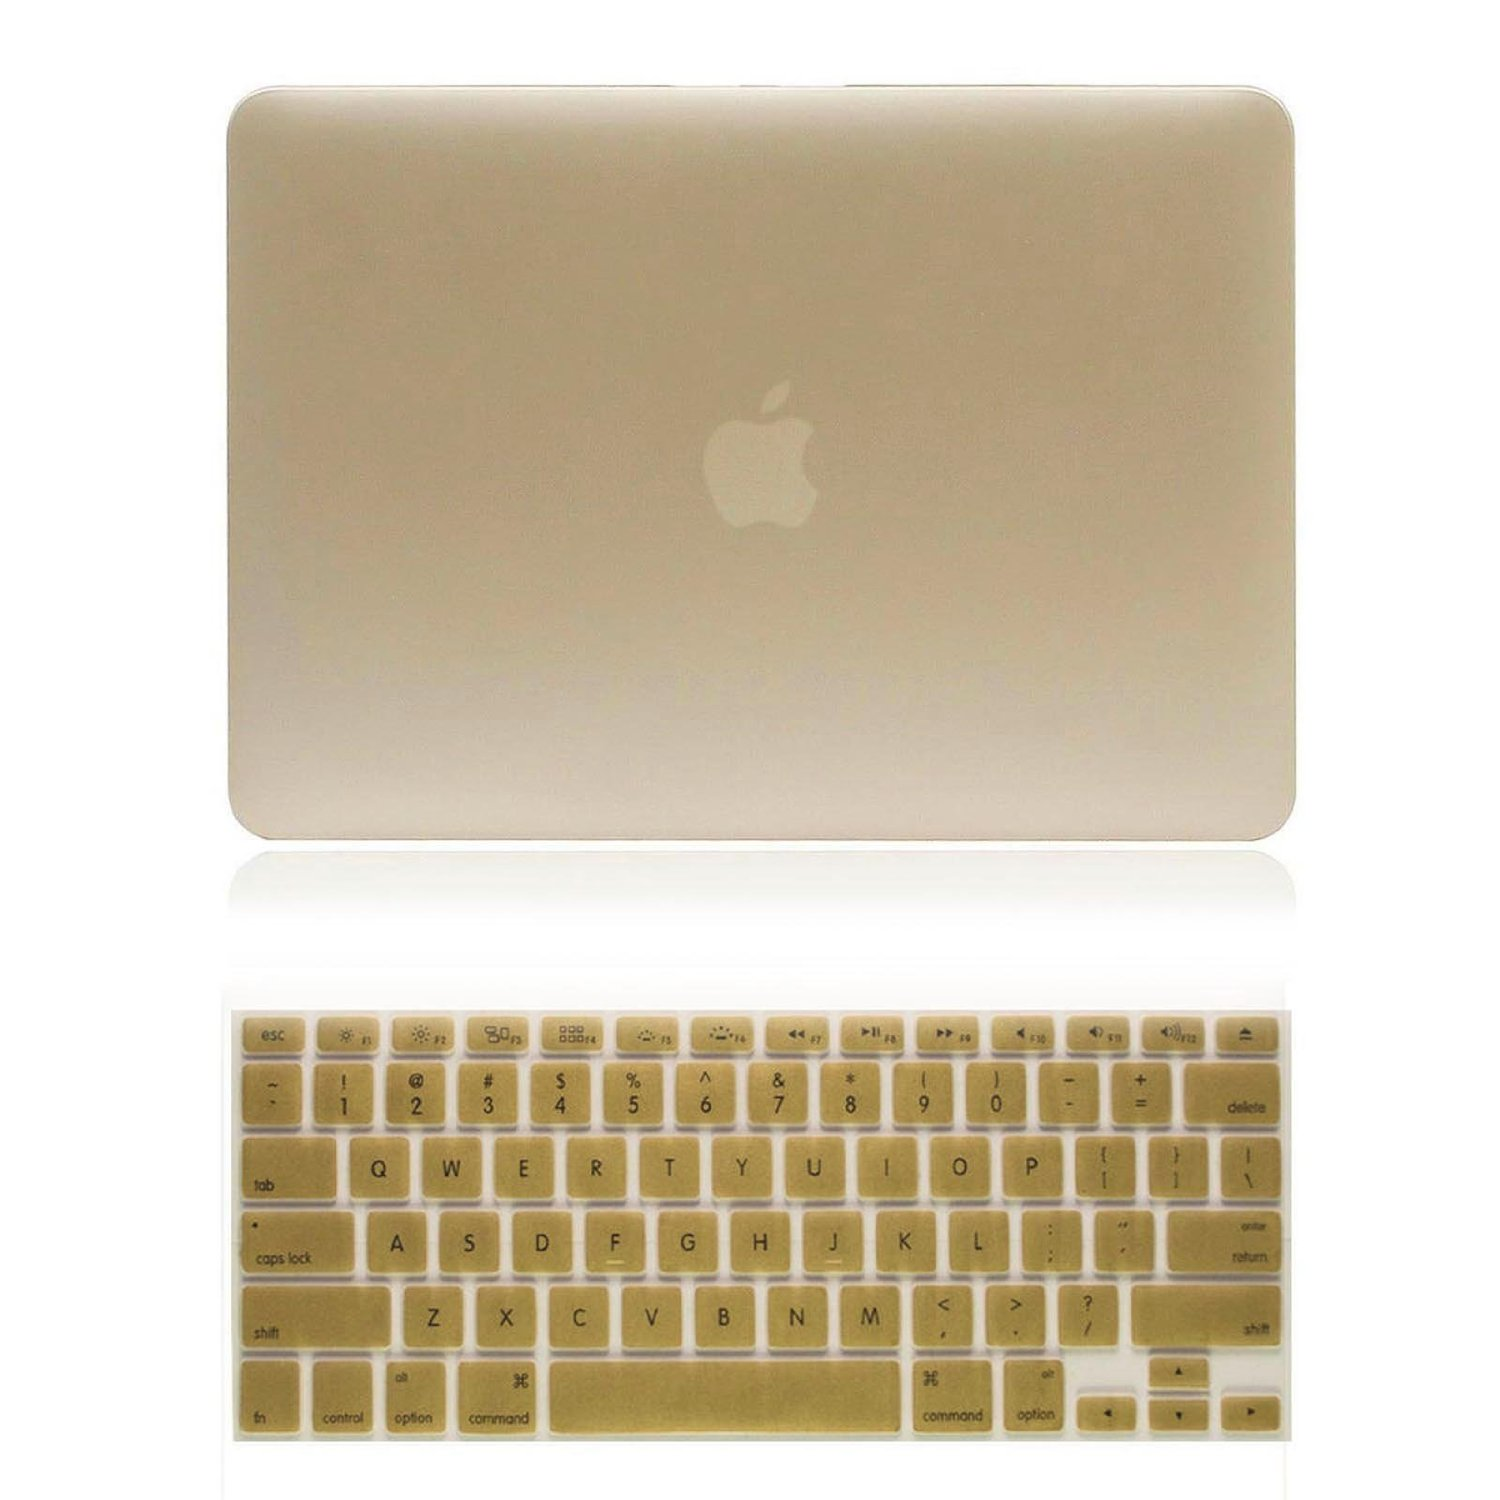 "New Arrival! 2in1 Gold Champagne Frosted Matte Hard Case Cover (Cut Off/Out Logo) for Macbook Air 13""13.3''inch (A1369/A1466) Laptop Case + Silicone Keyboard Cover, ePacket Shipping"